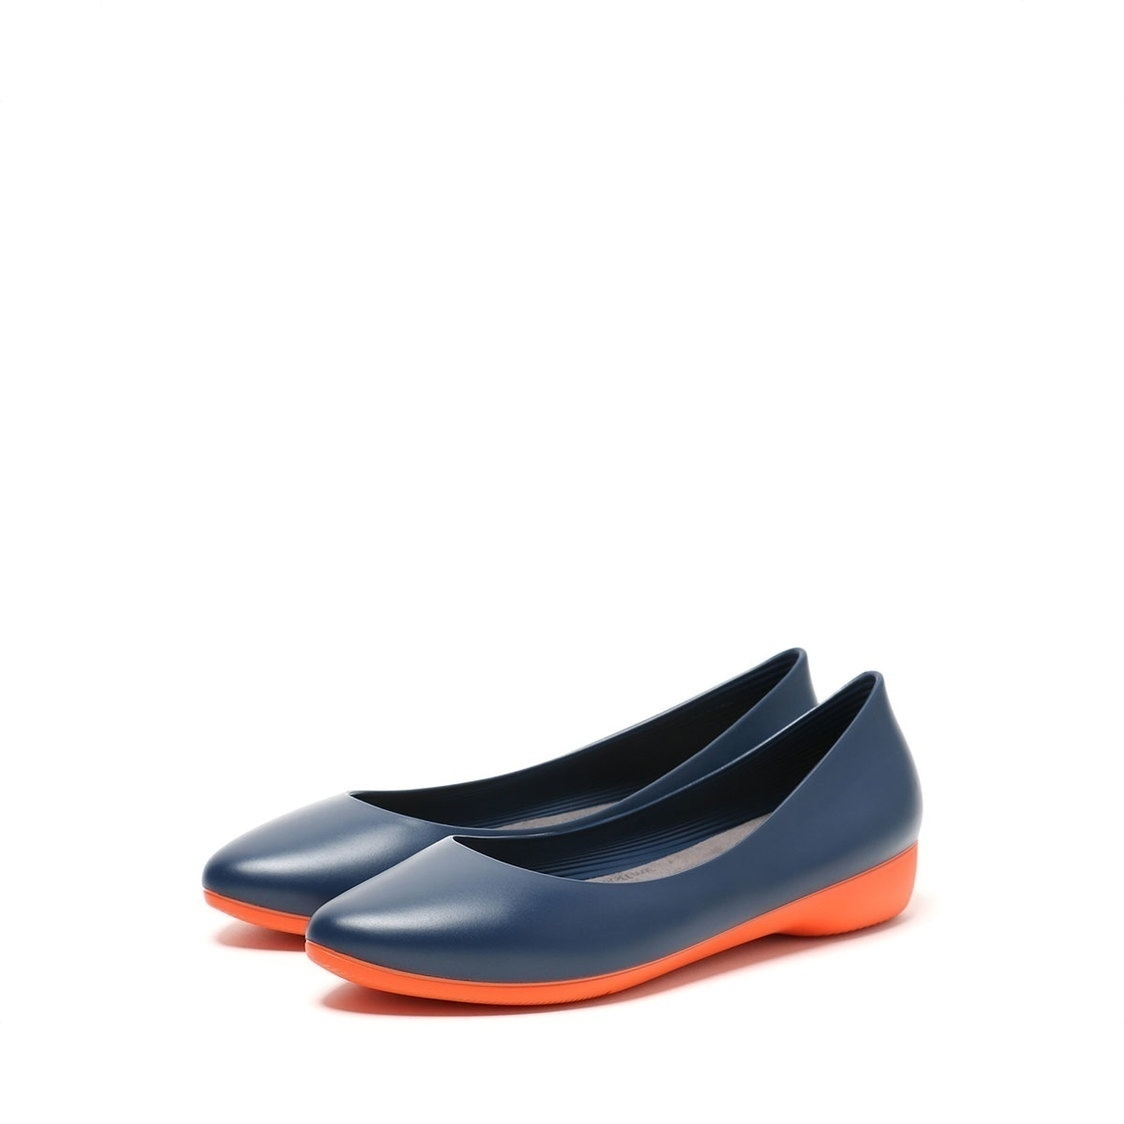 F3 Flat-Pointed Heel height 3cm Deep Navy